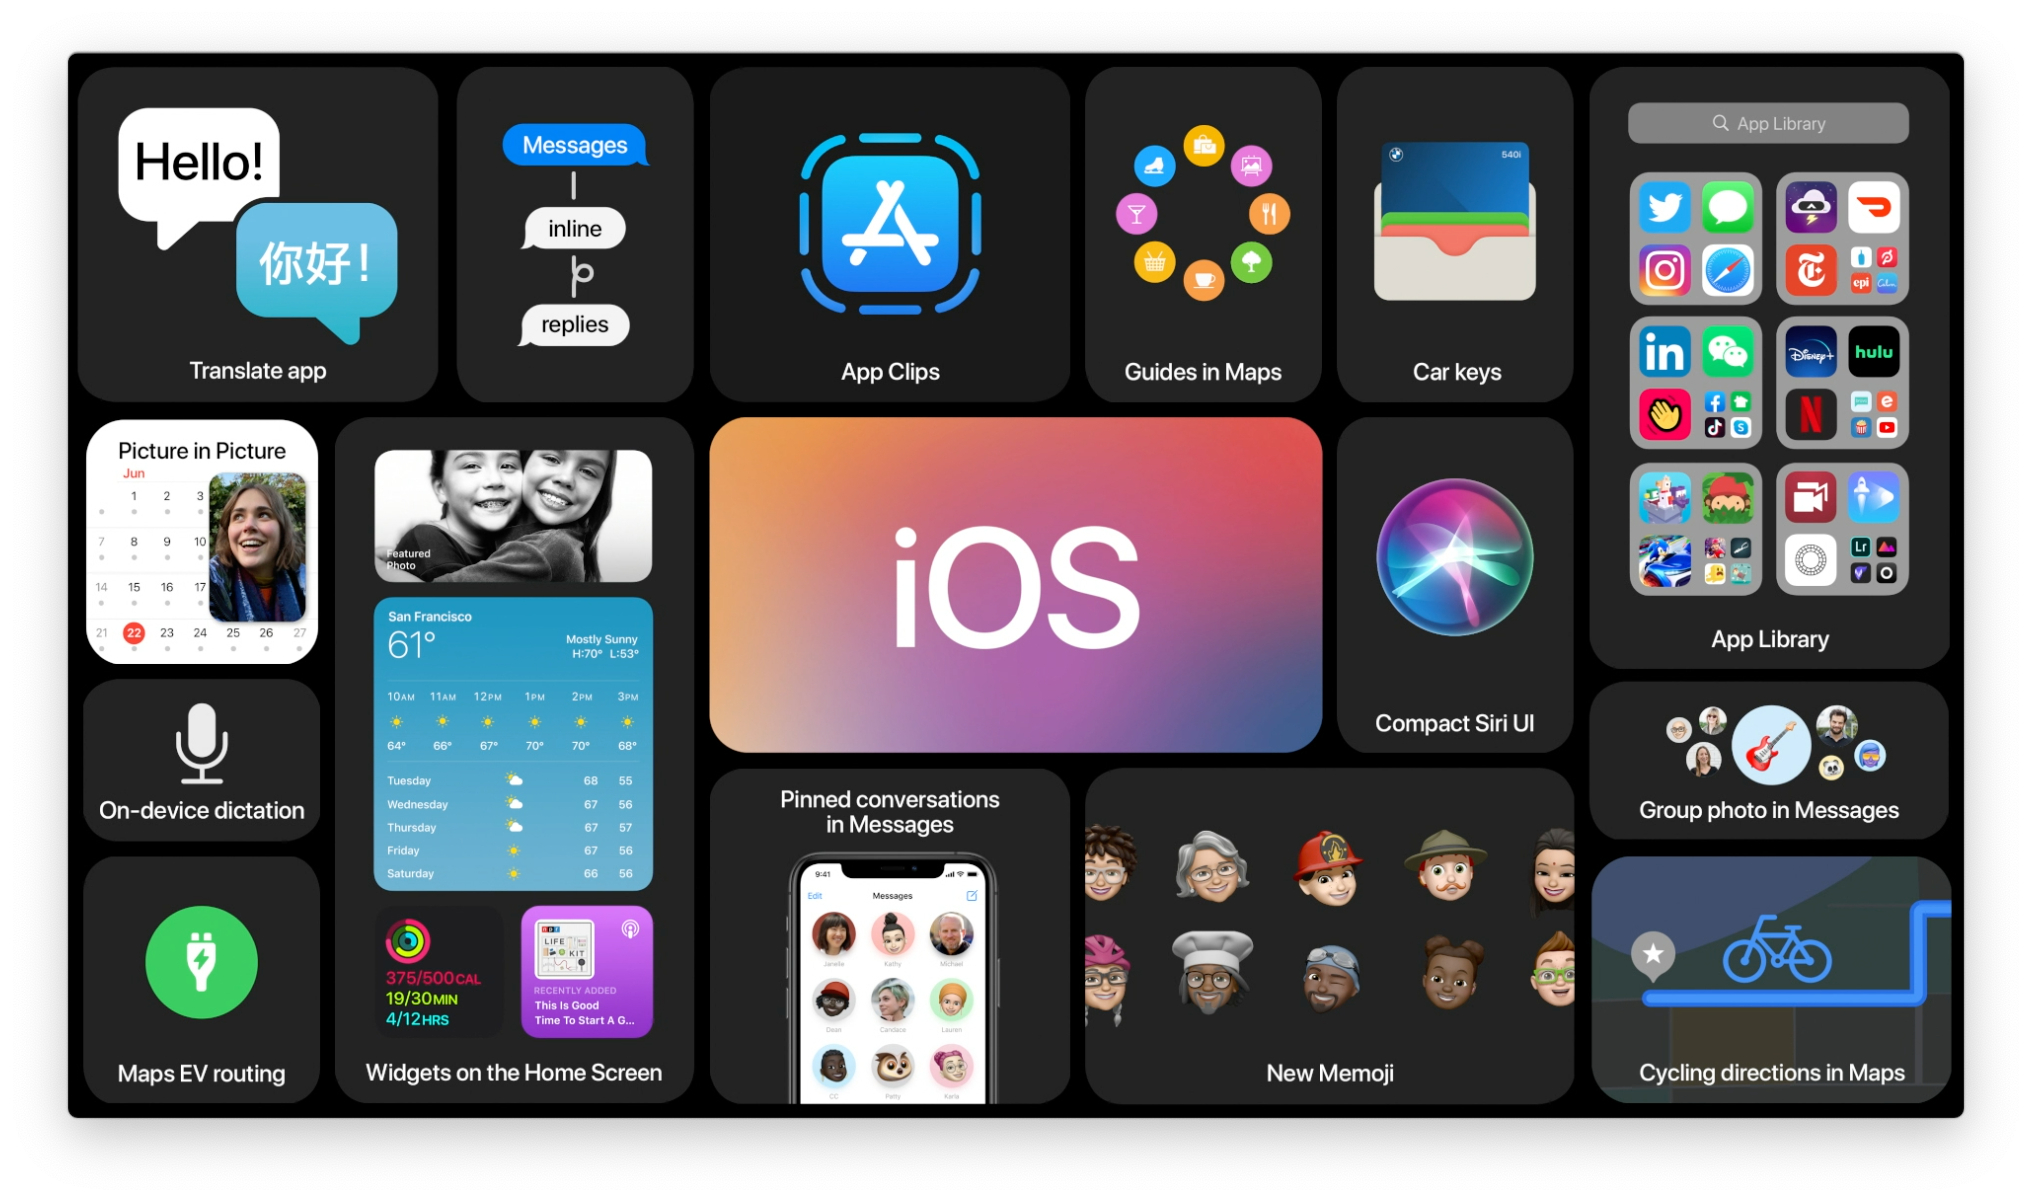 iOS 14: Latest Additions to the iOS to Help Build Your Dream App